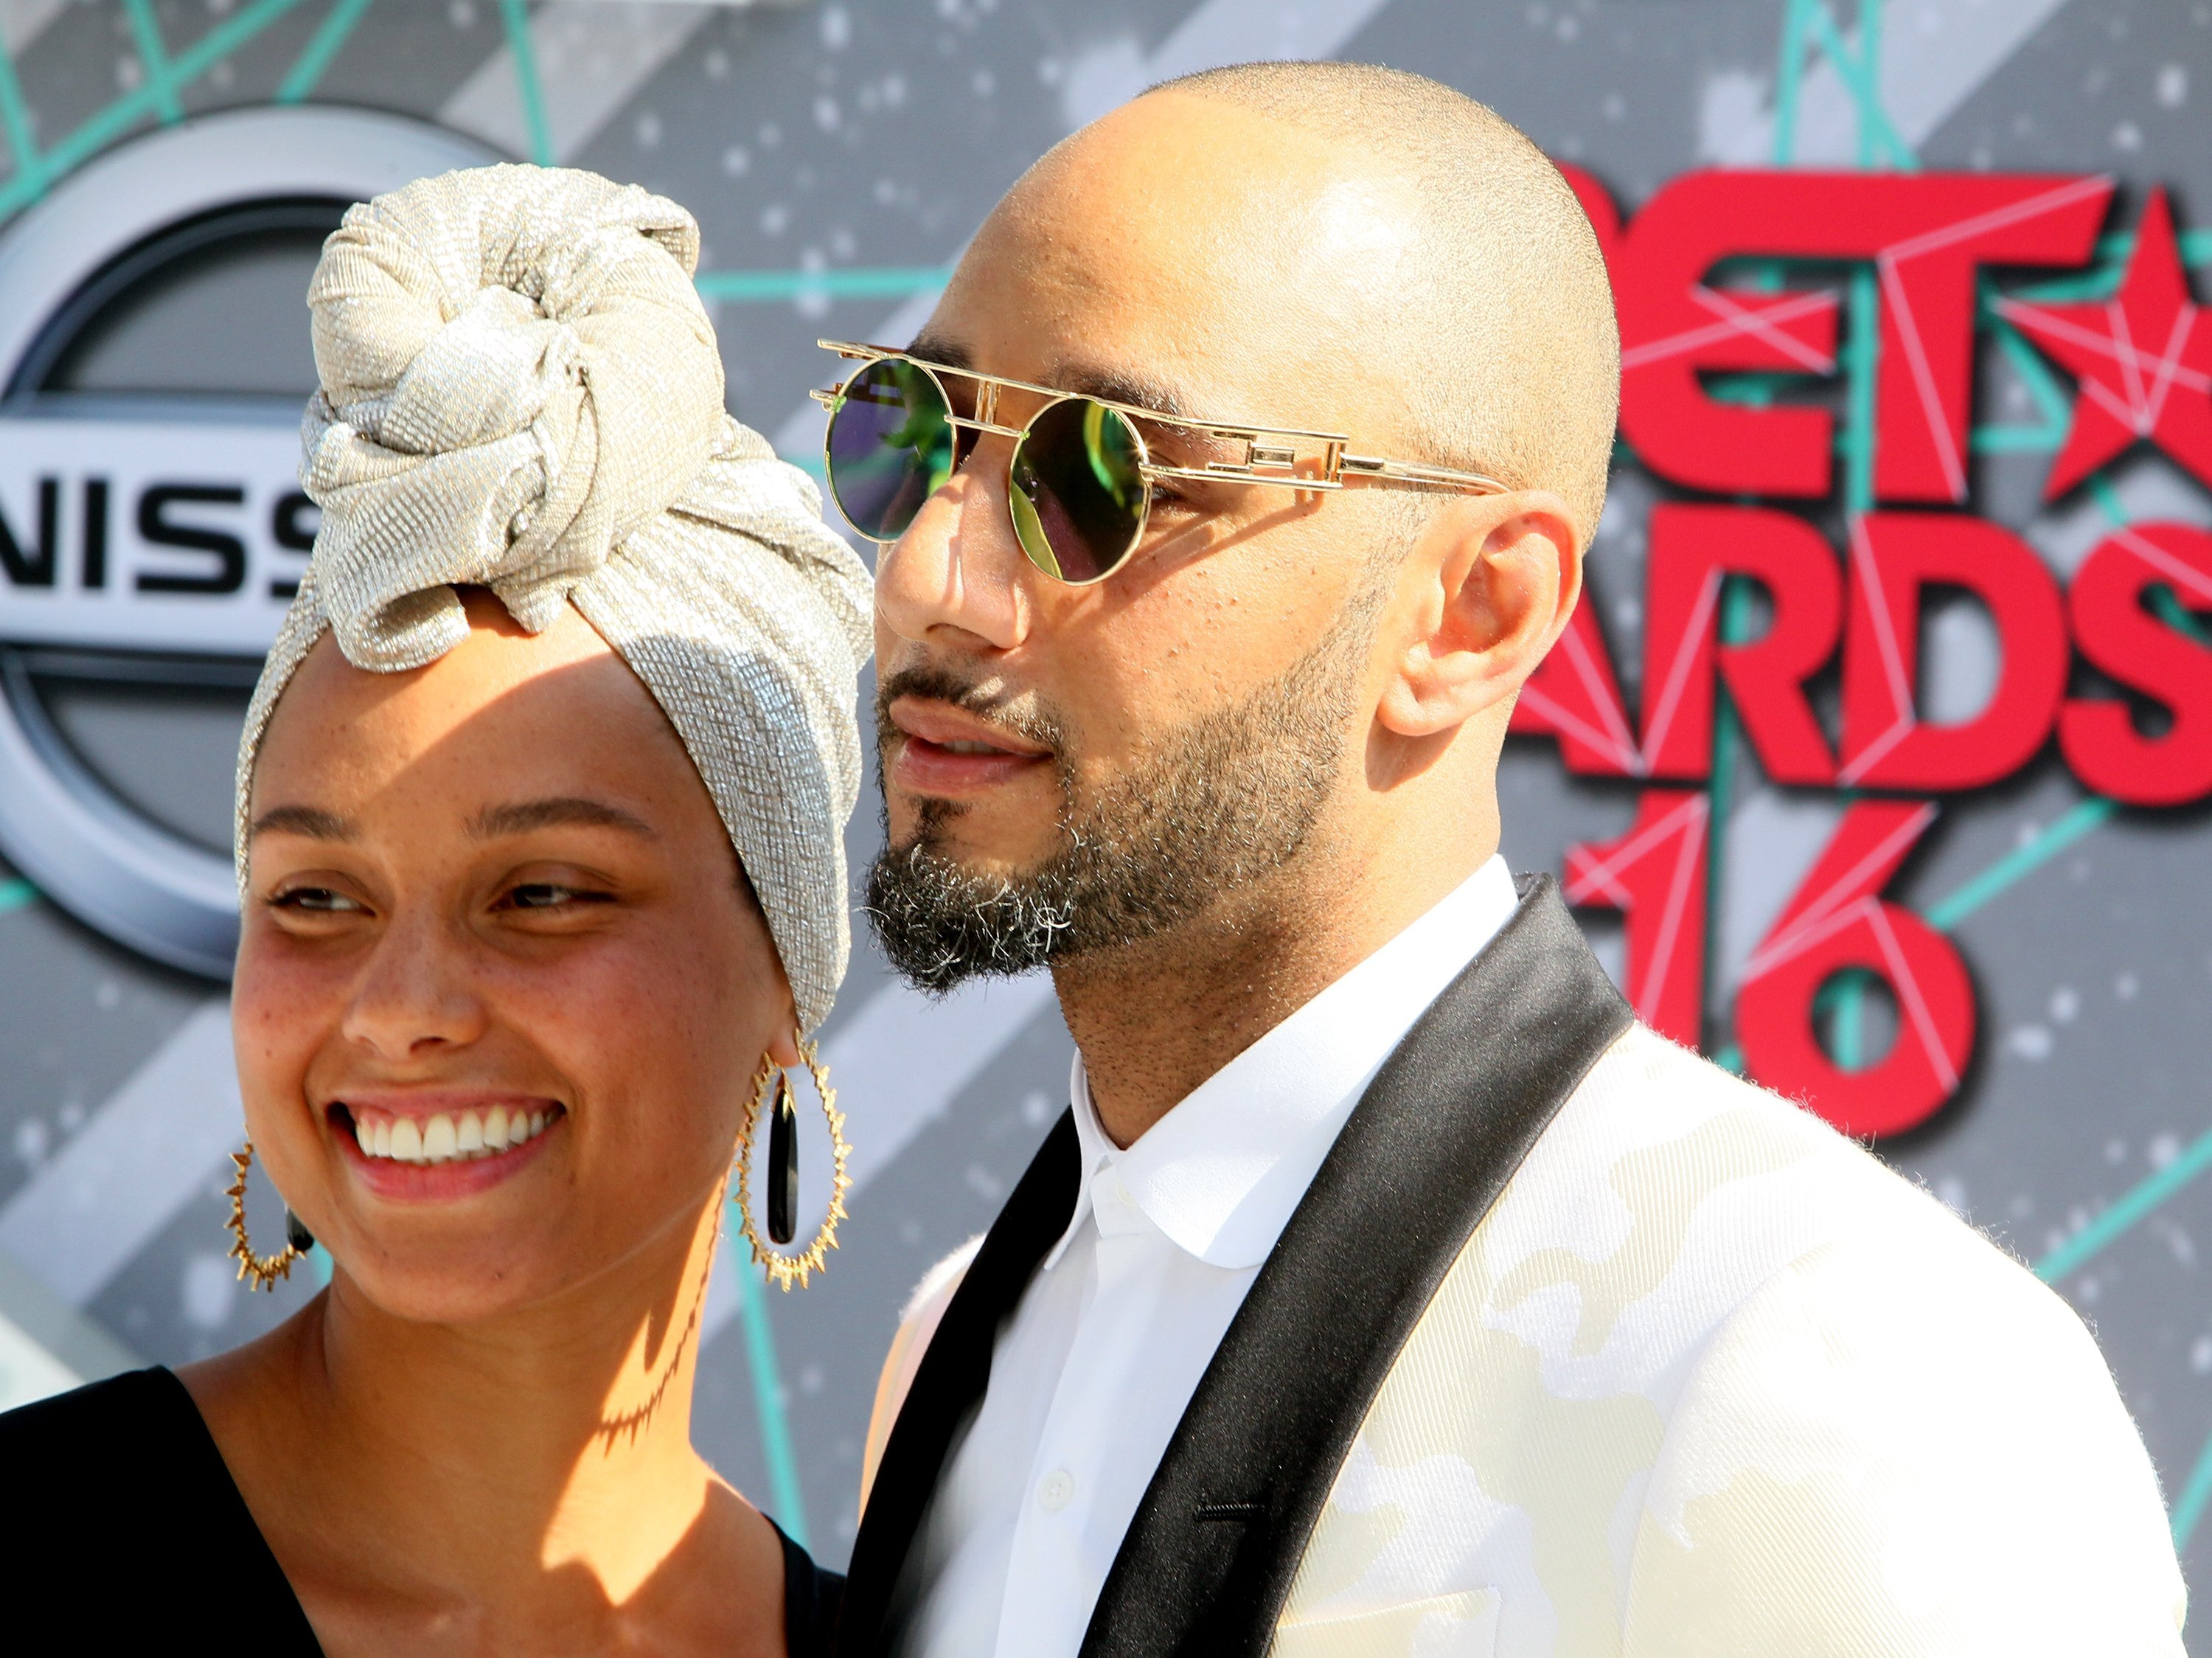 Alicia Keys & Swizz Beatz at the BET Awards in Los Angeles, California on June 26, 2016 | Photo: Getty Images